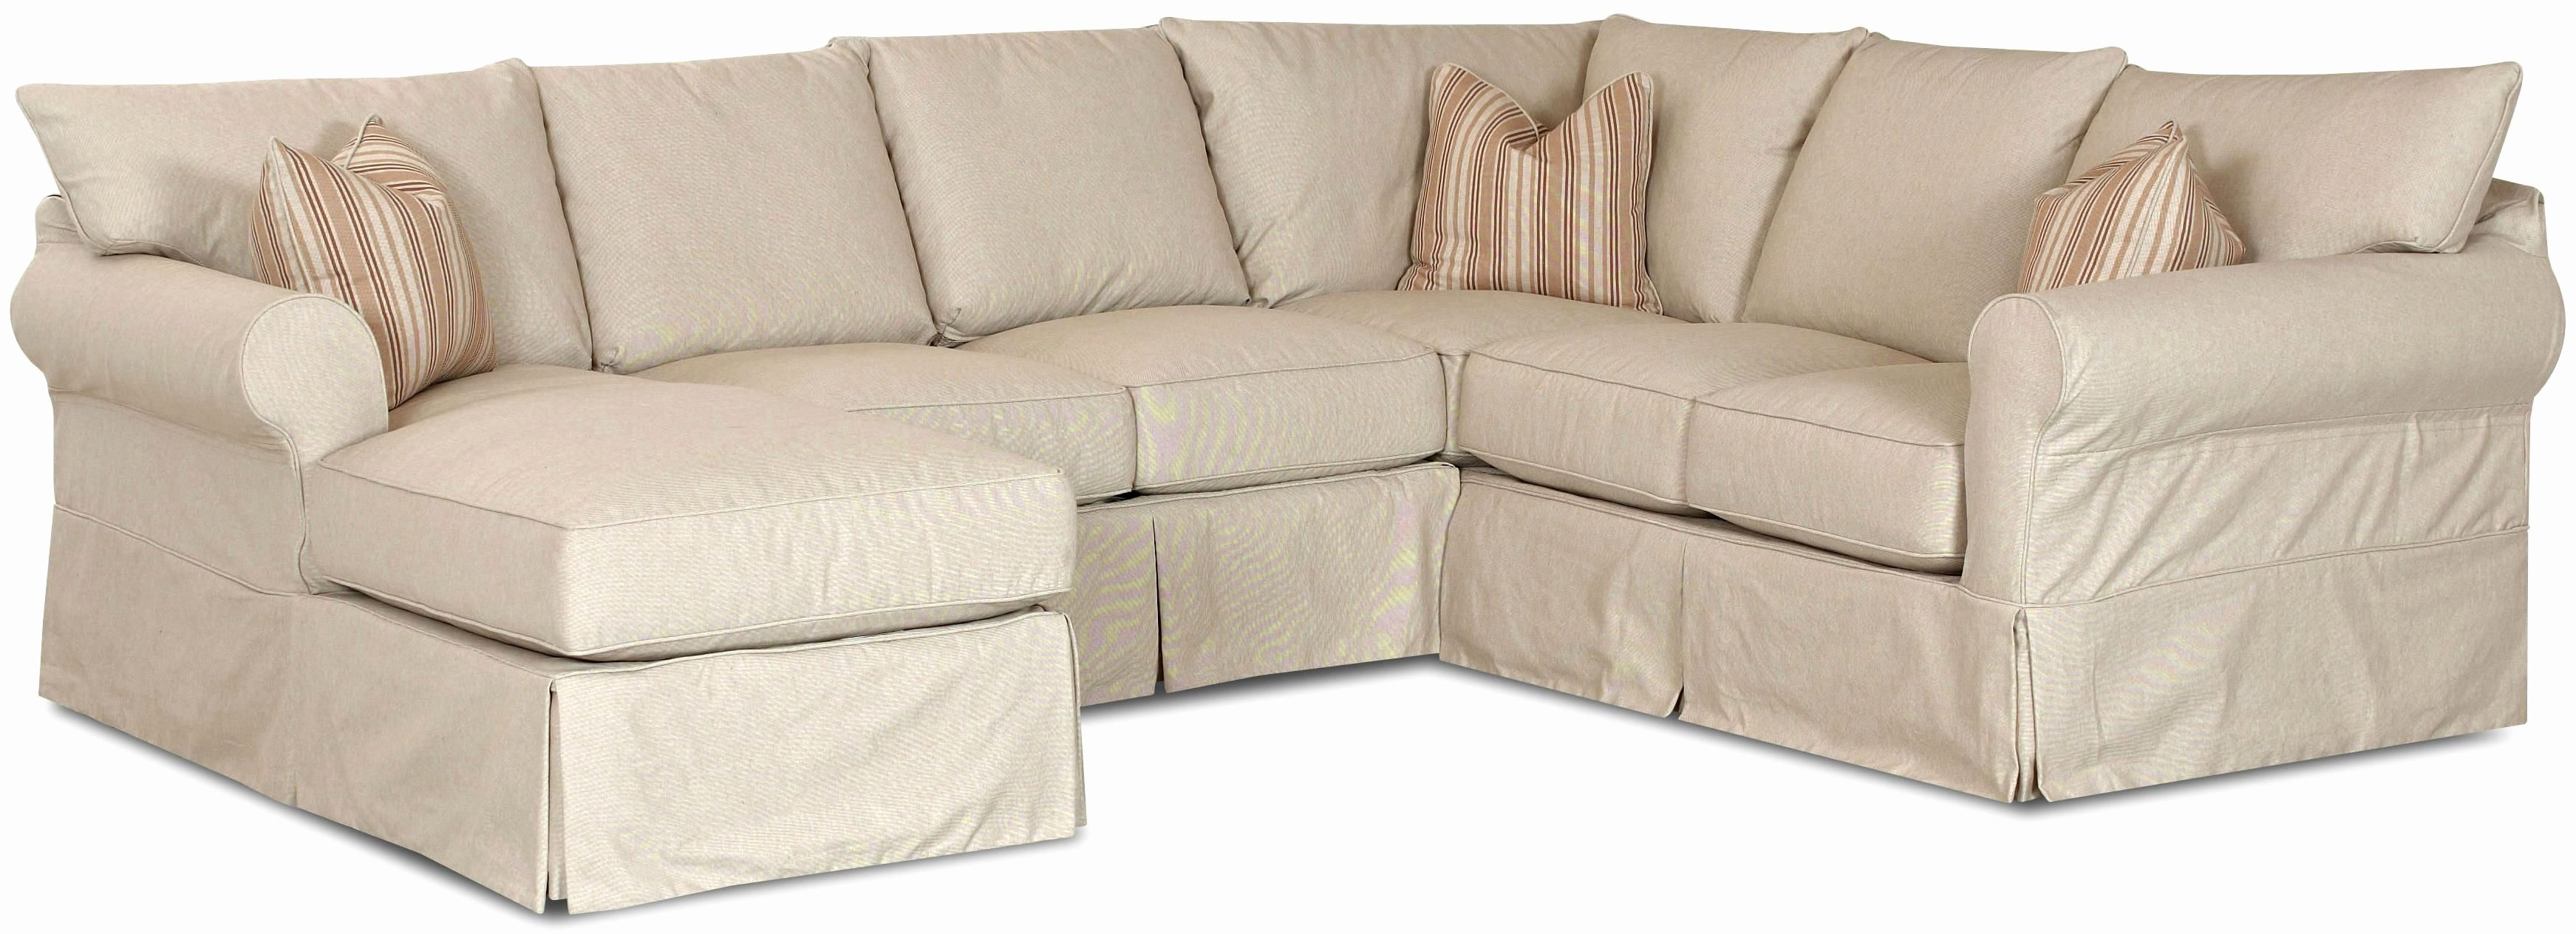 Inspirational Slipcover Sectional sofa graphs Slipcover